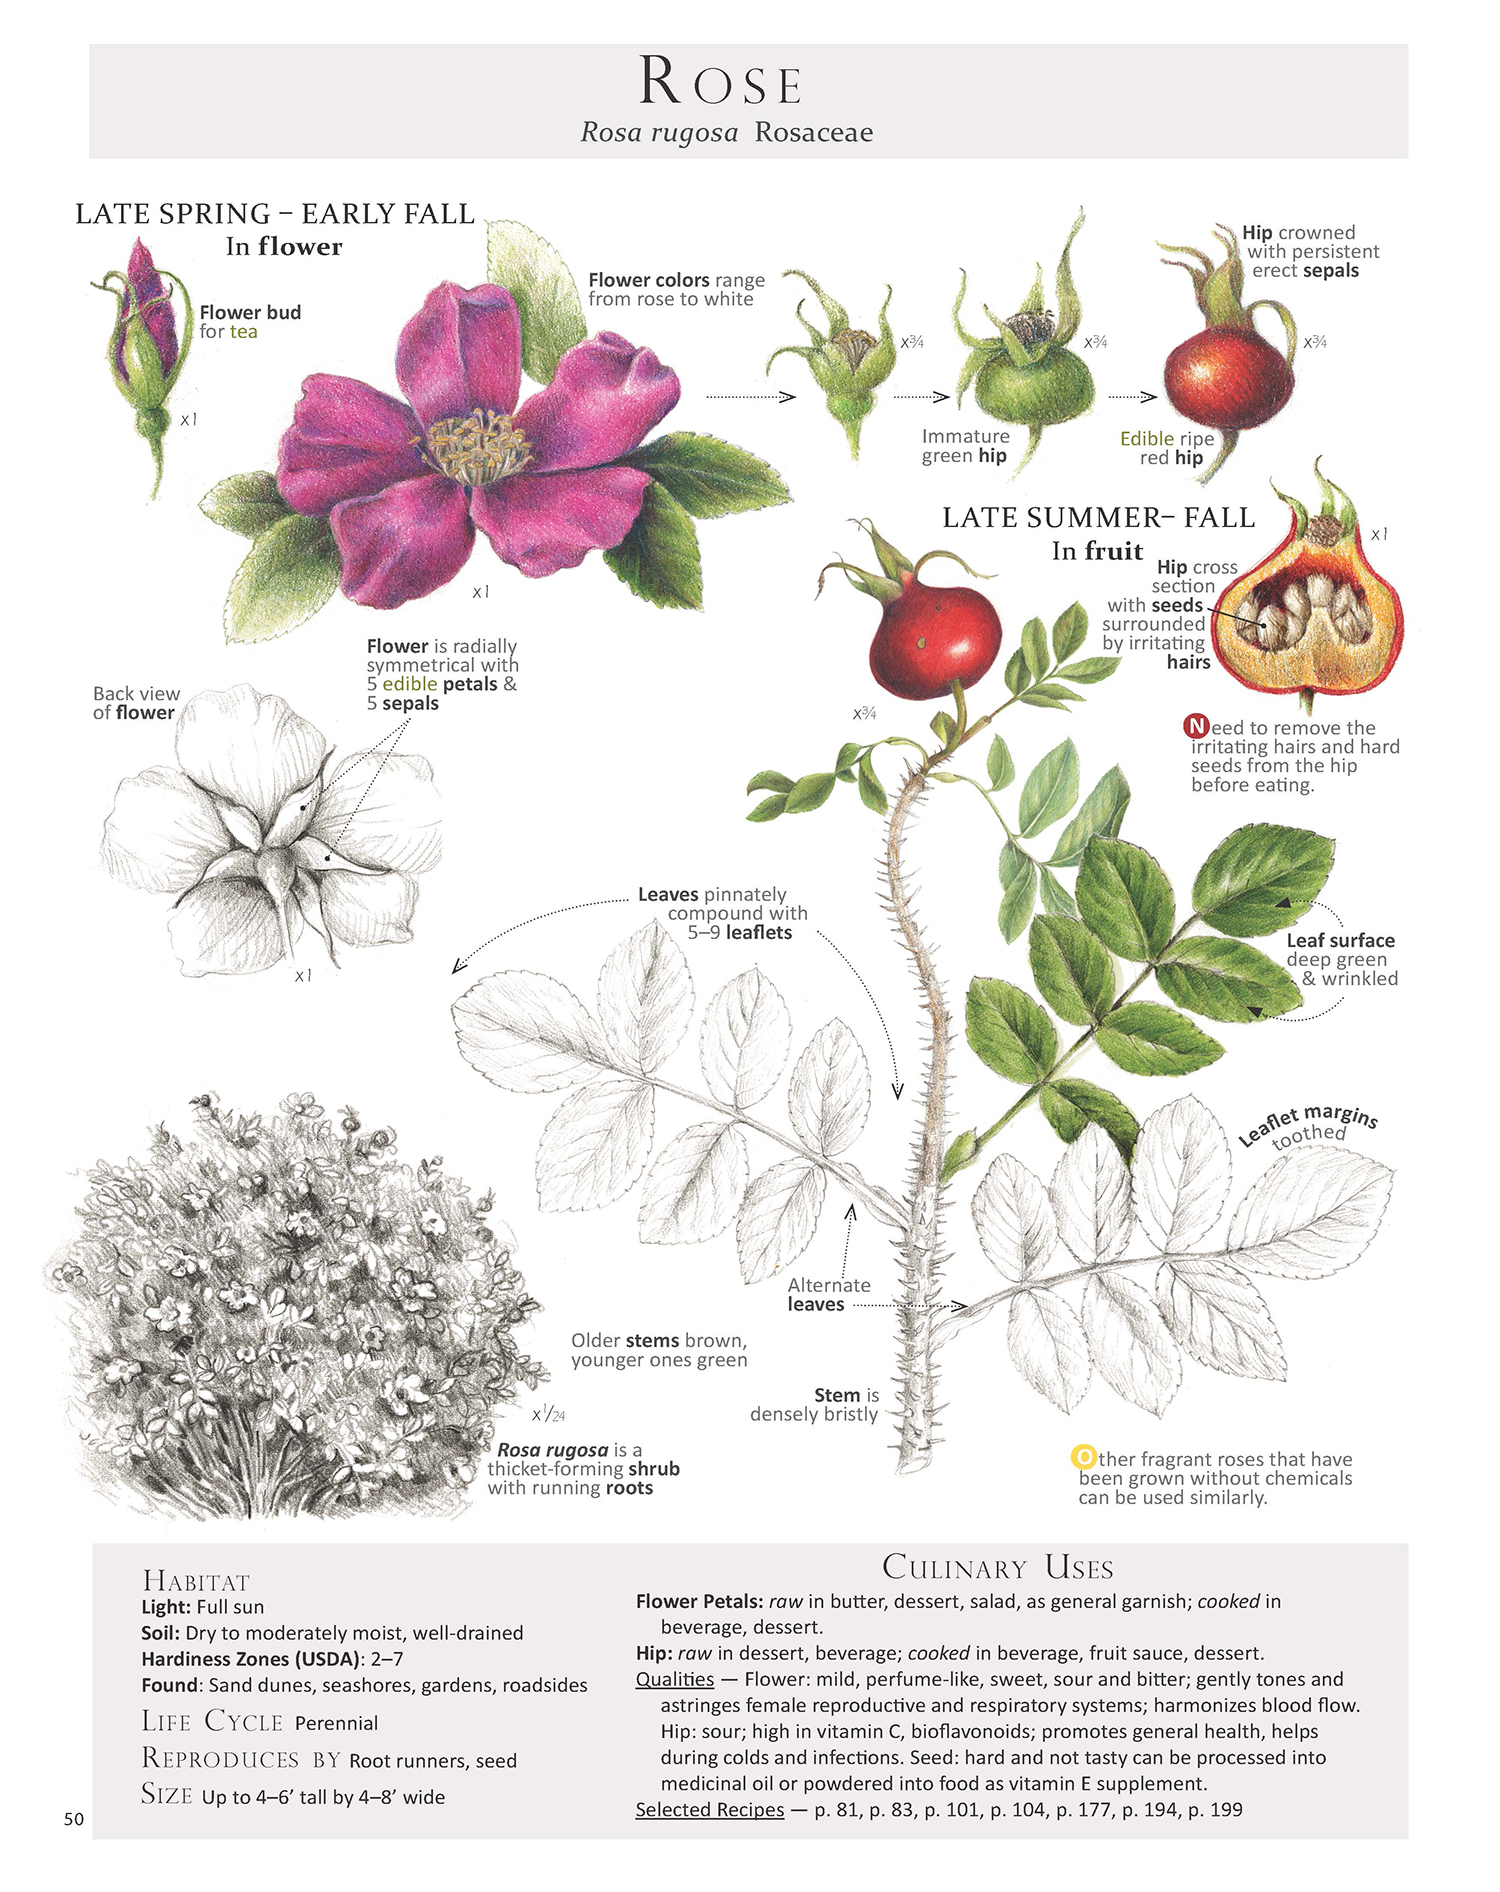 This Rose page is from our book Foraging & Feasting: A Field Guide and Wild Food Cookbook by (me) Dina Falconi, illustrated by Wendy Hollender ~ Book Link: http://bit.ly/1Auh44Q